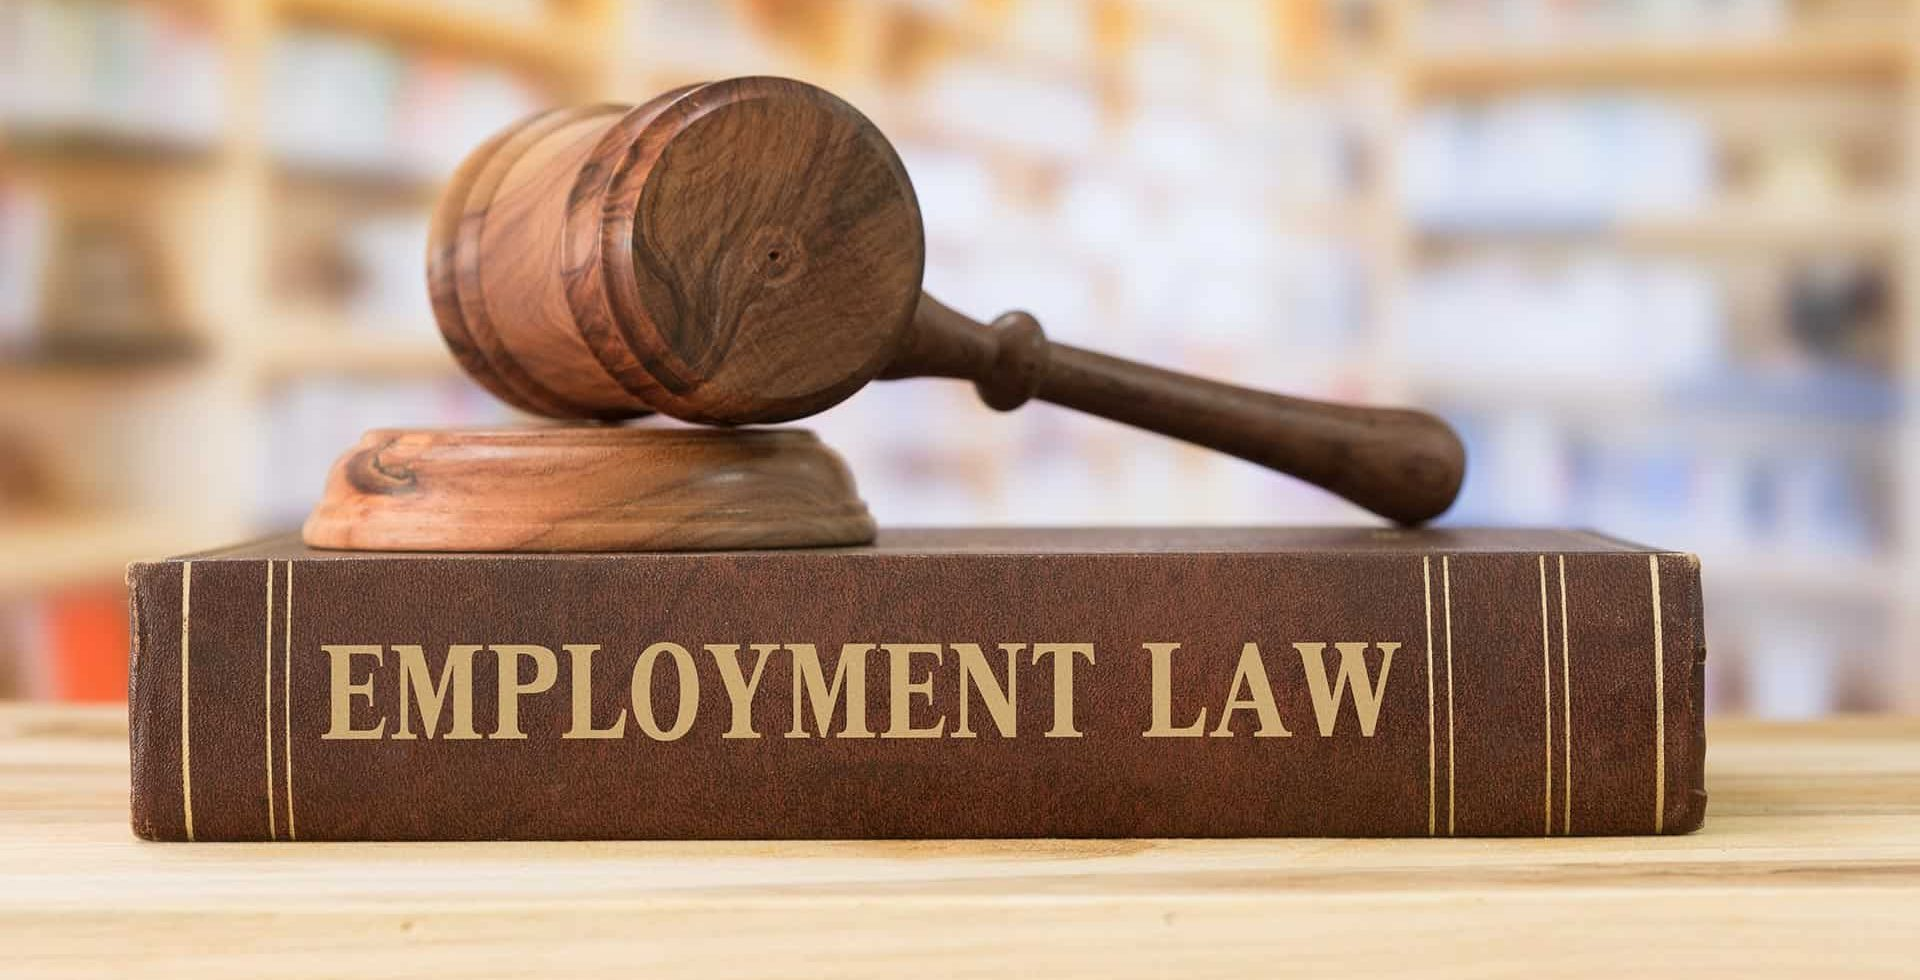 employment-law-article-3